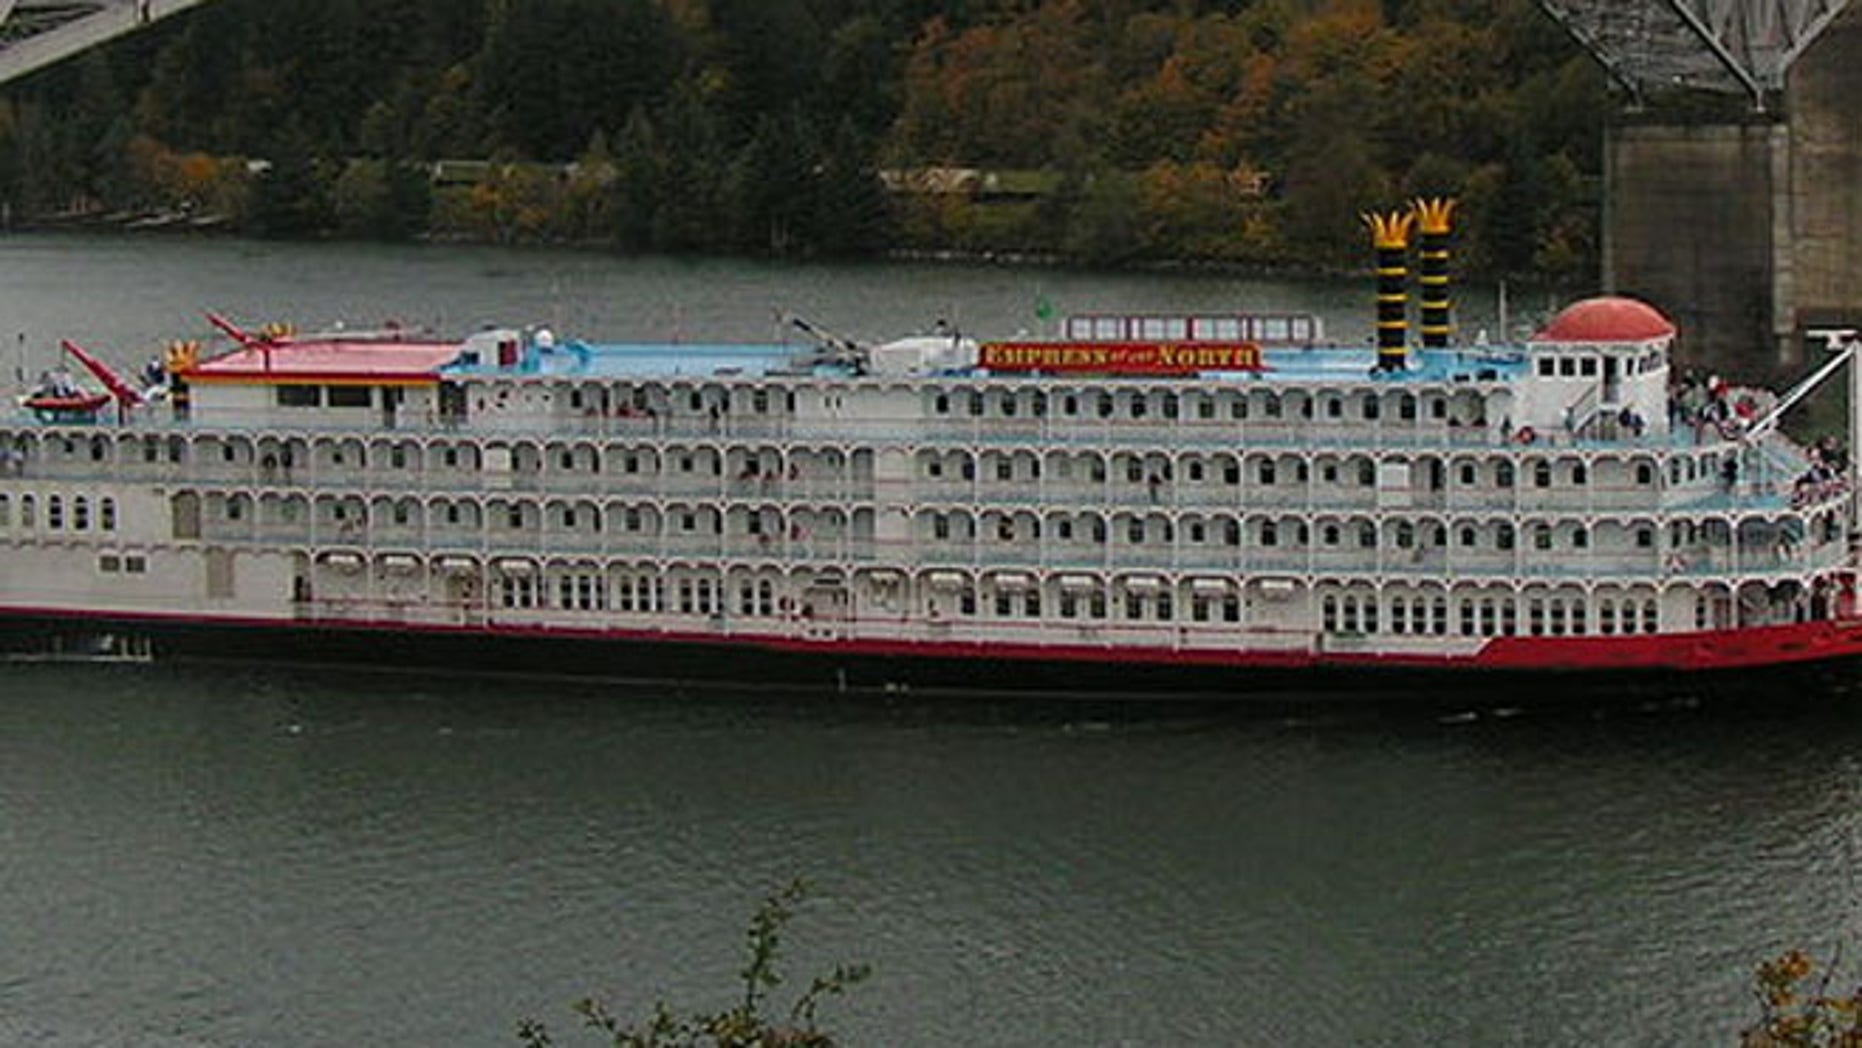 The formerly-named Empress of the North on the Columbia River.